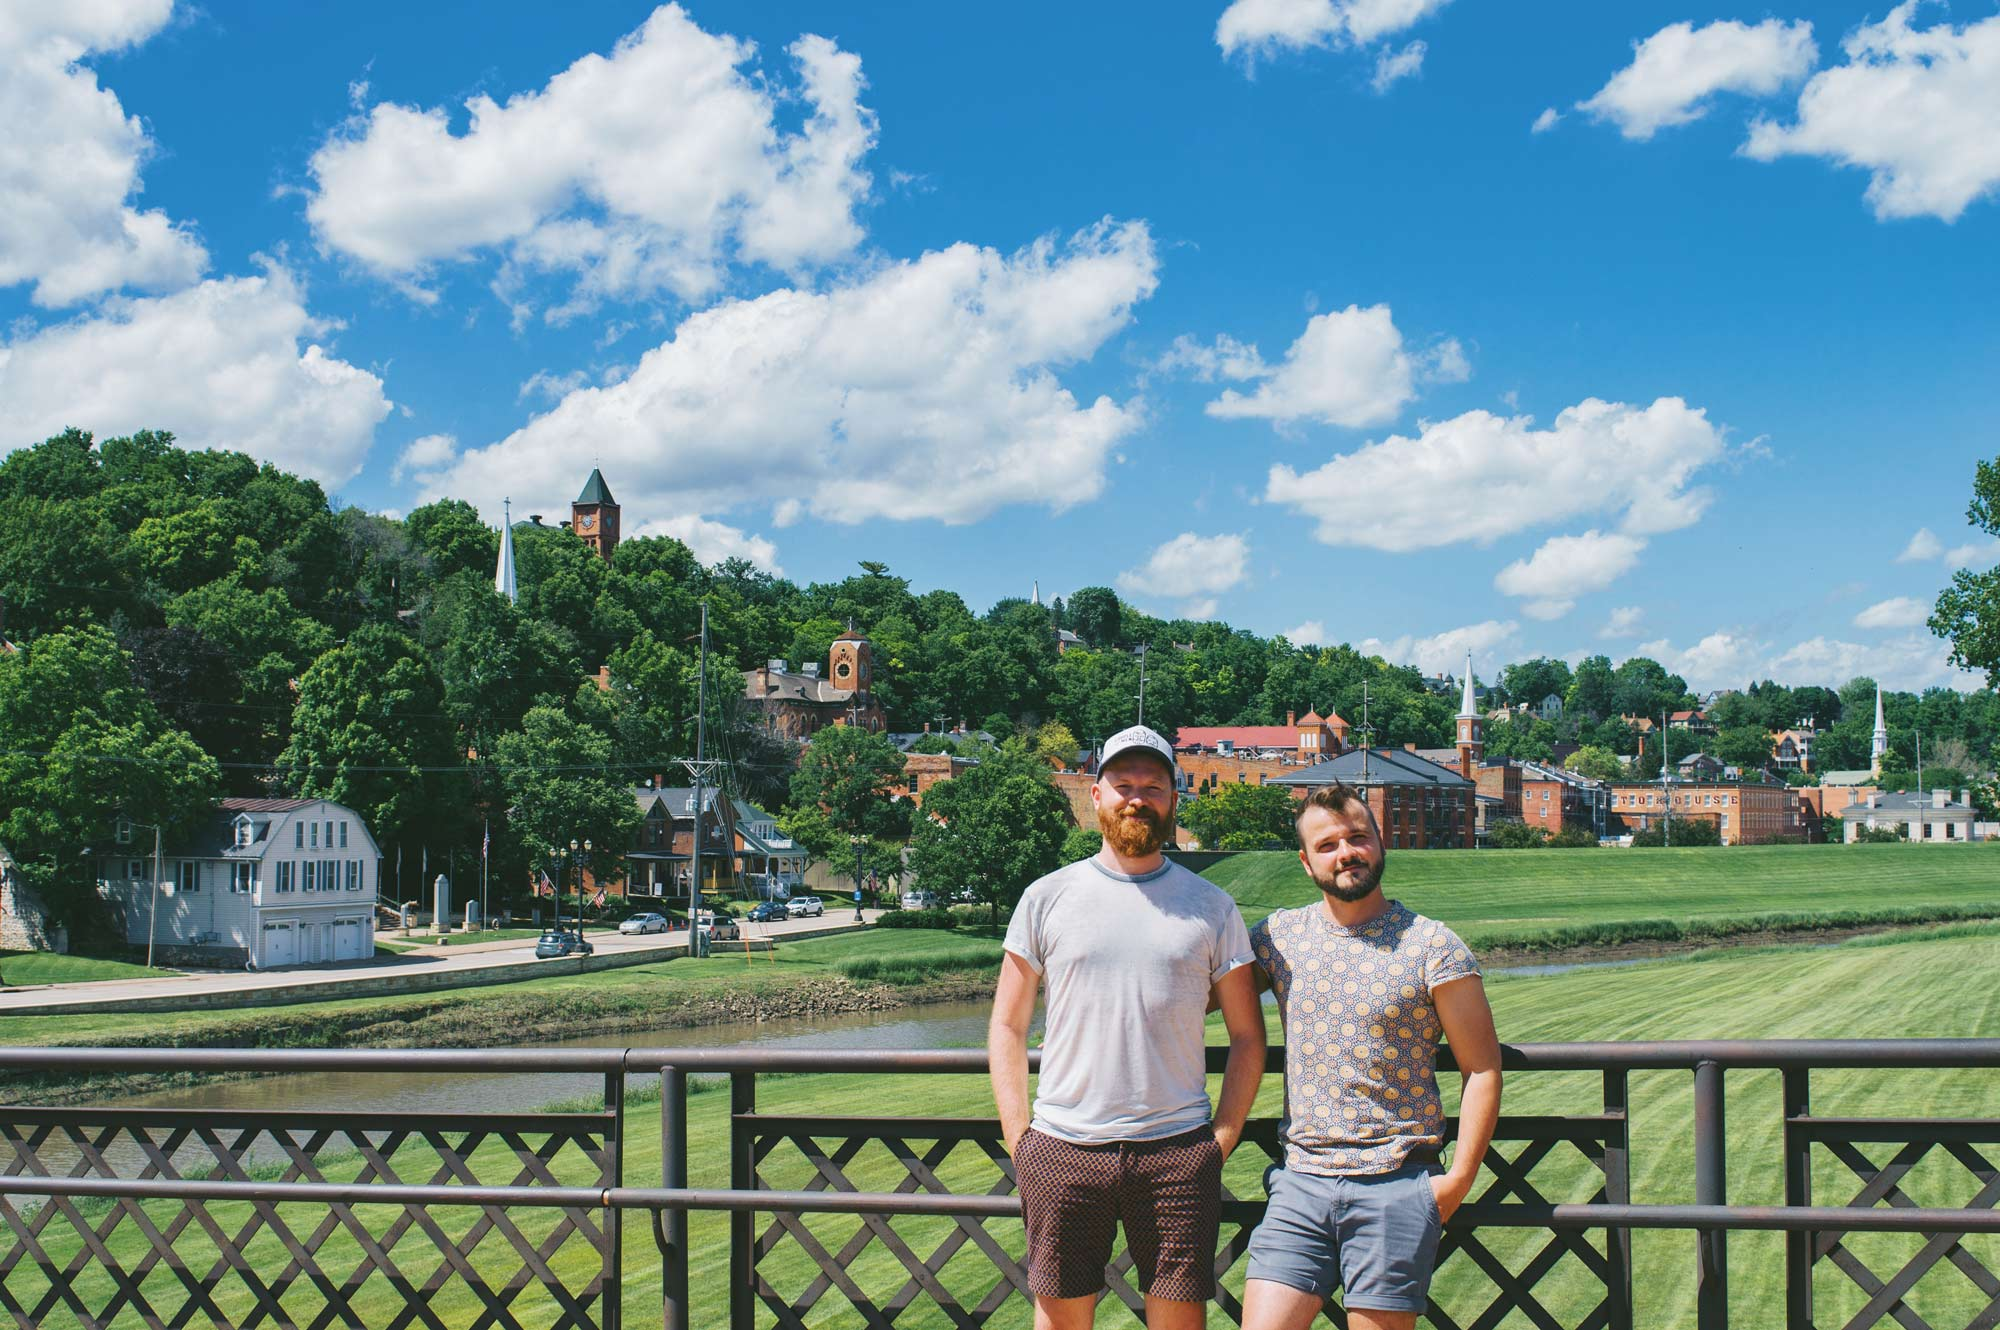 Gay Galena LGBT Getaway Illinois Galena Illinois Road Trip Galena Gay Getaway Illinois Galena LGBTQ+ and Gay Getaway Illinois © Coupleofmen.com